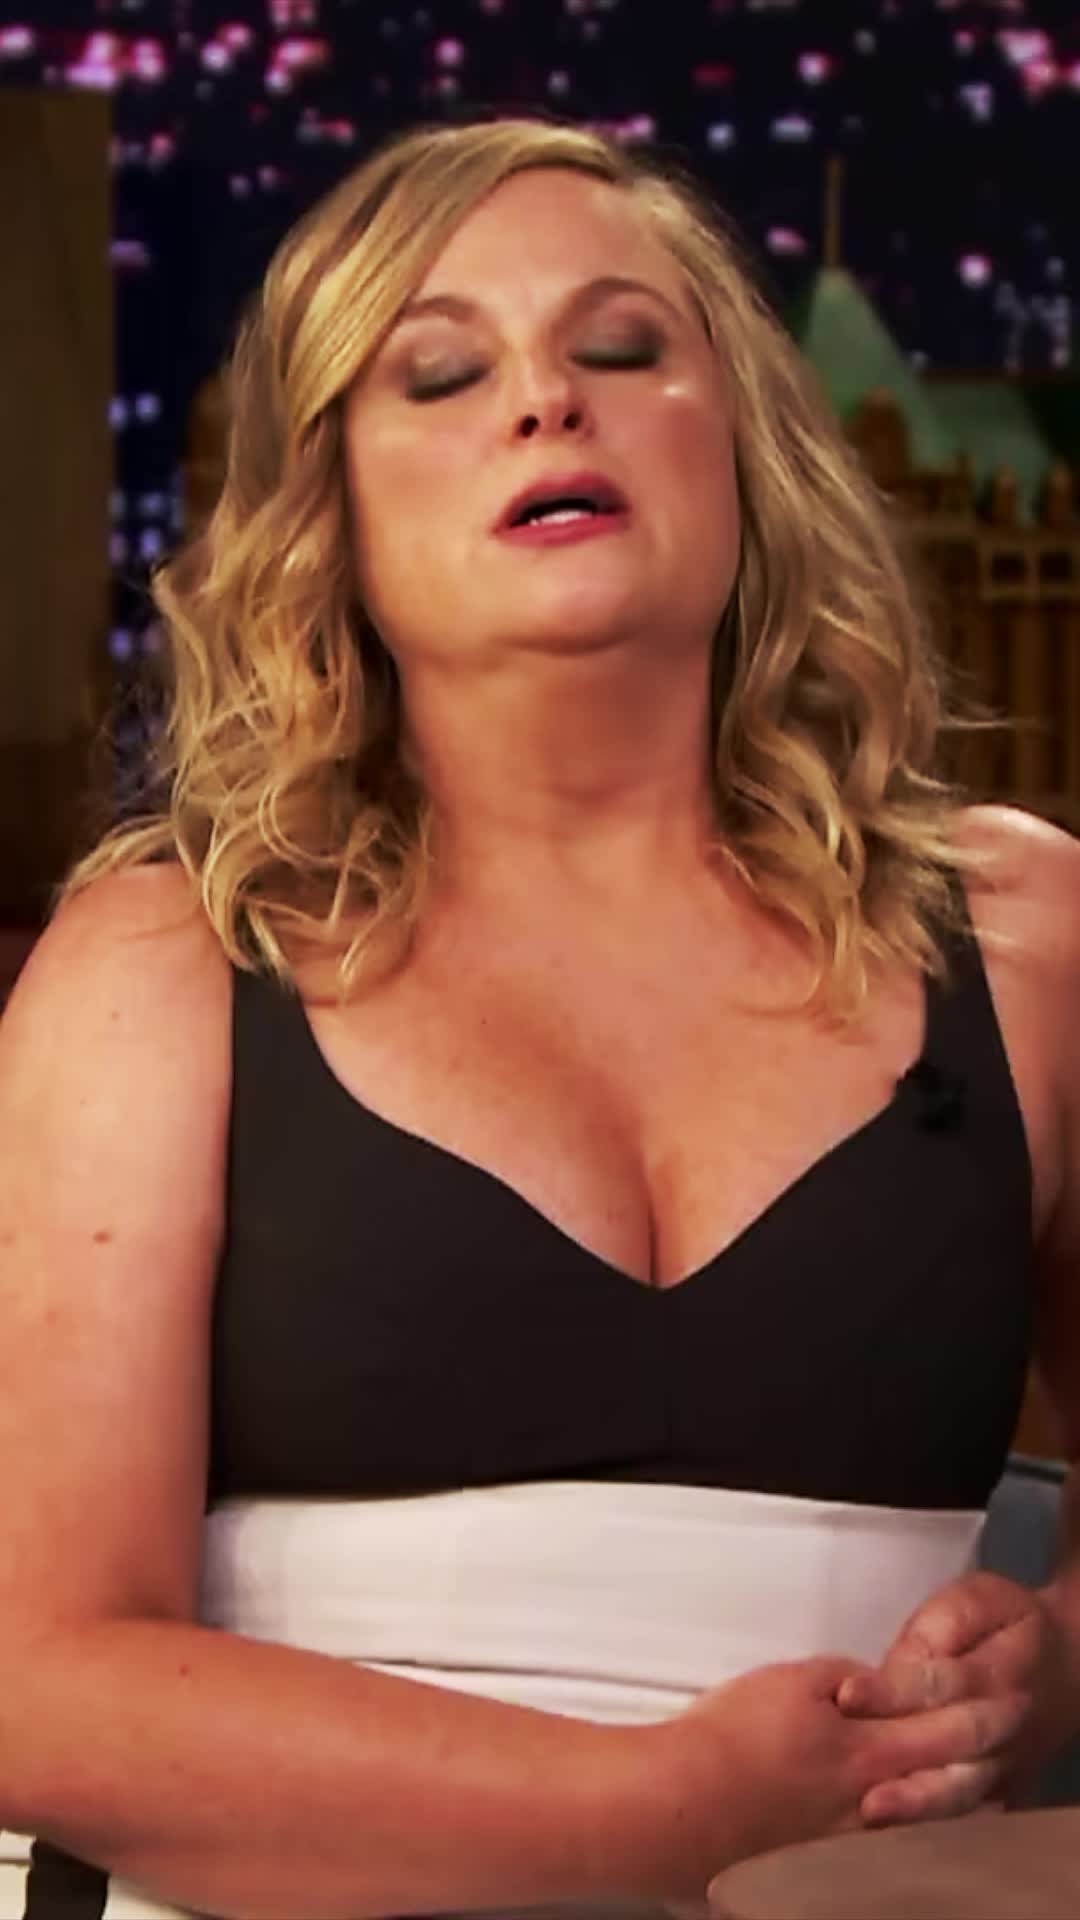 amy poehler, beautiful woman, blonde, cleavage, cute, hot, sexy, the tonight show, Amy Poehler GIFs